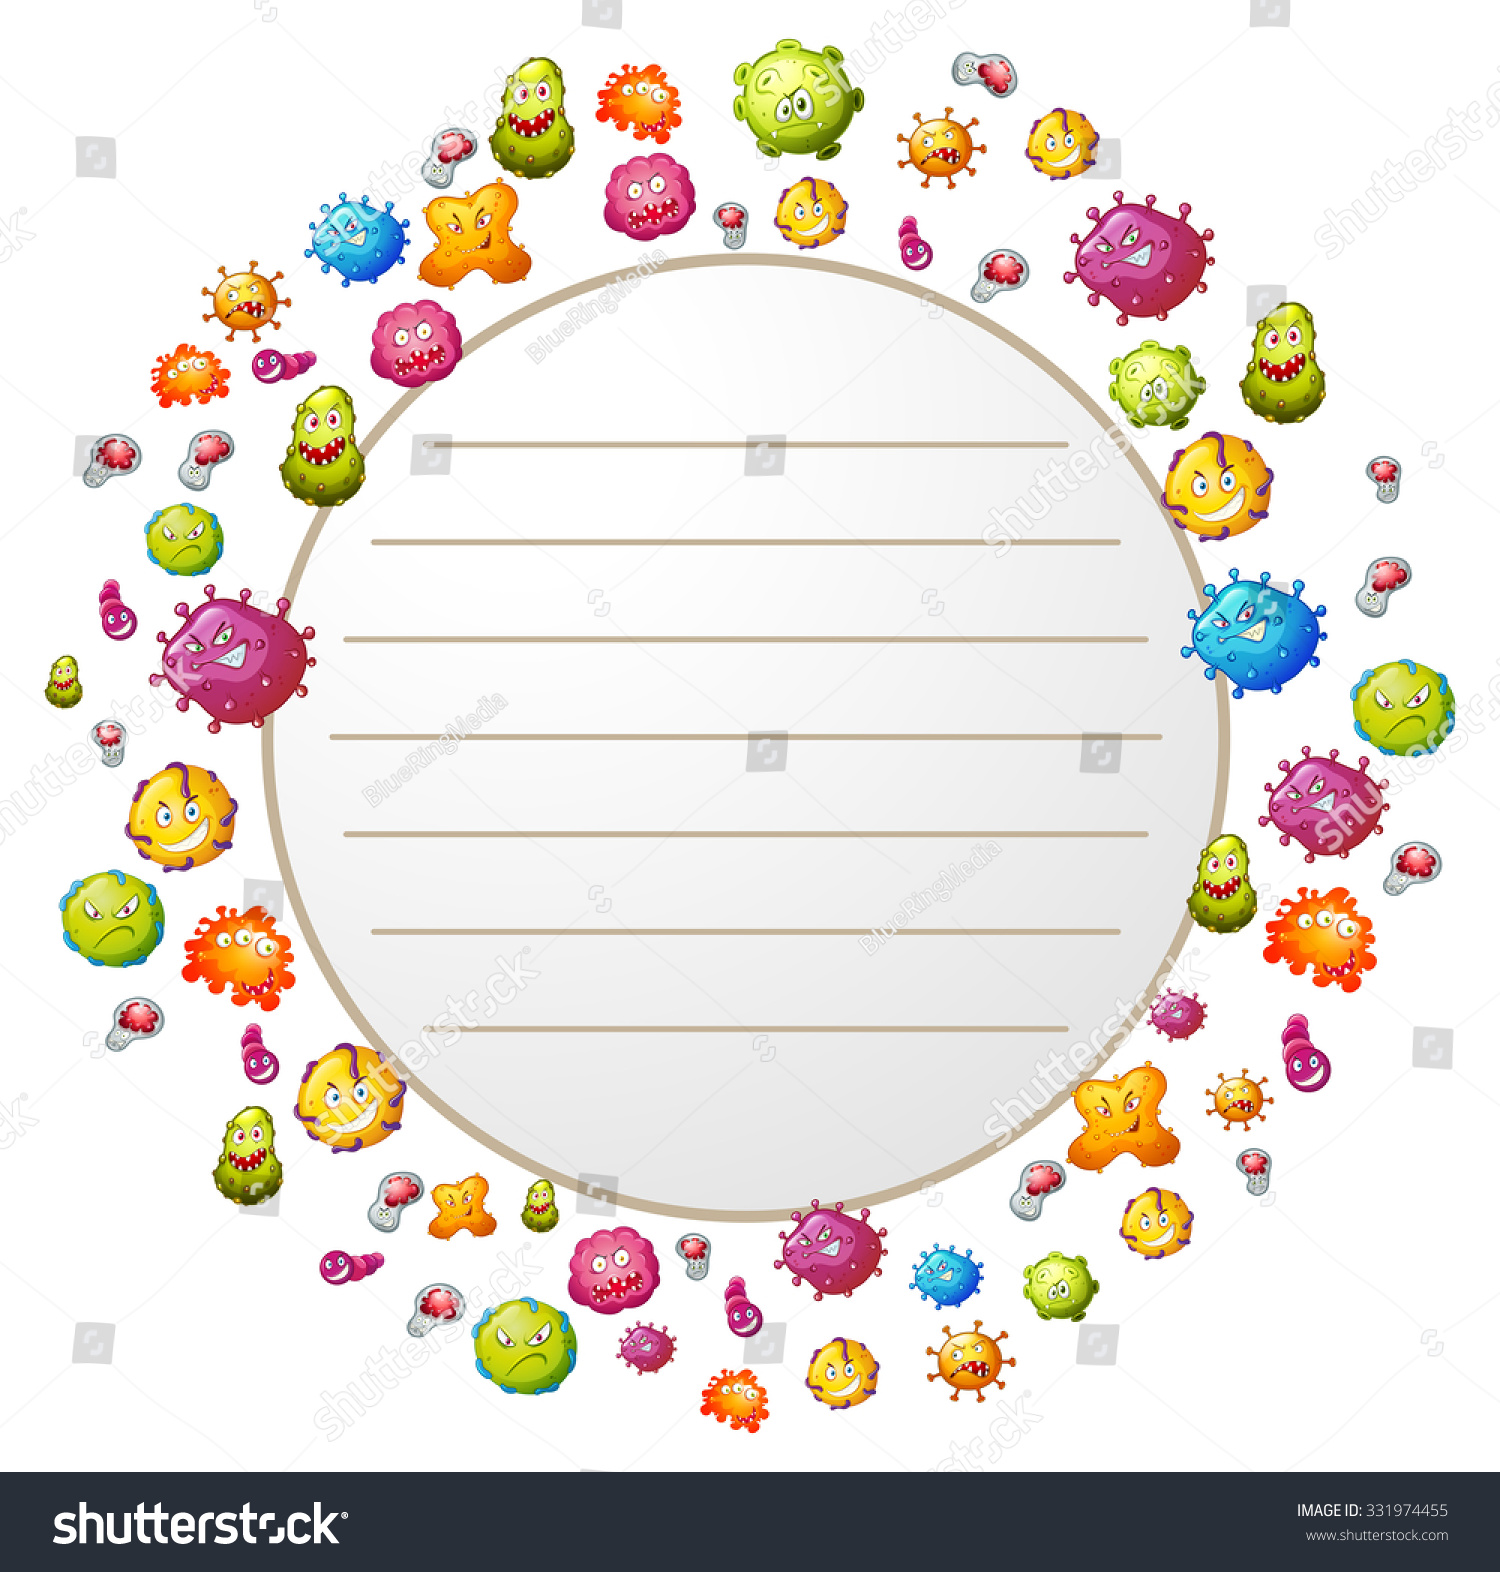 Border design bacteria illustration stock vector 331974455 for Html cell border